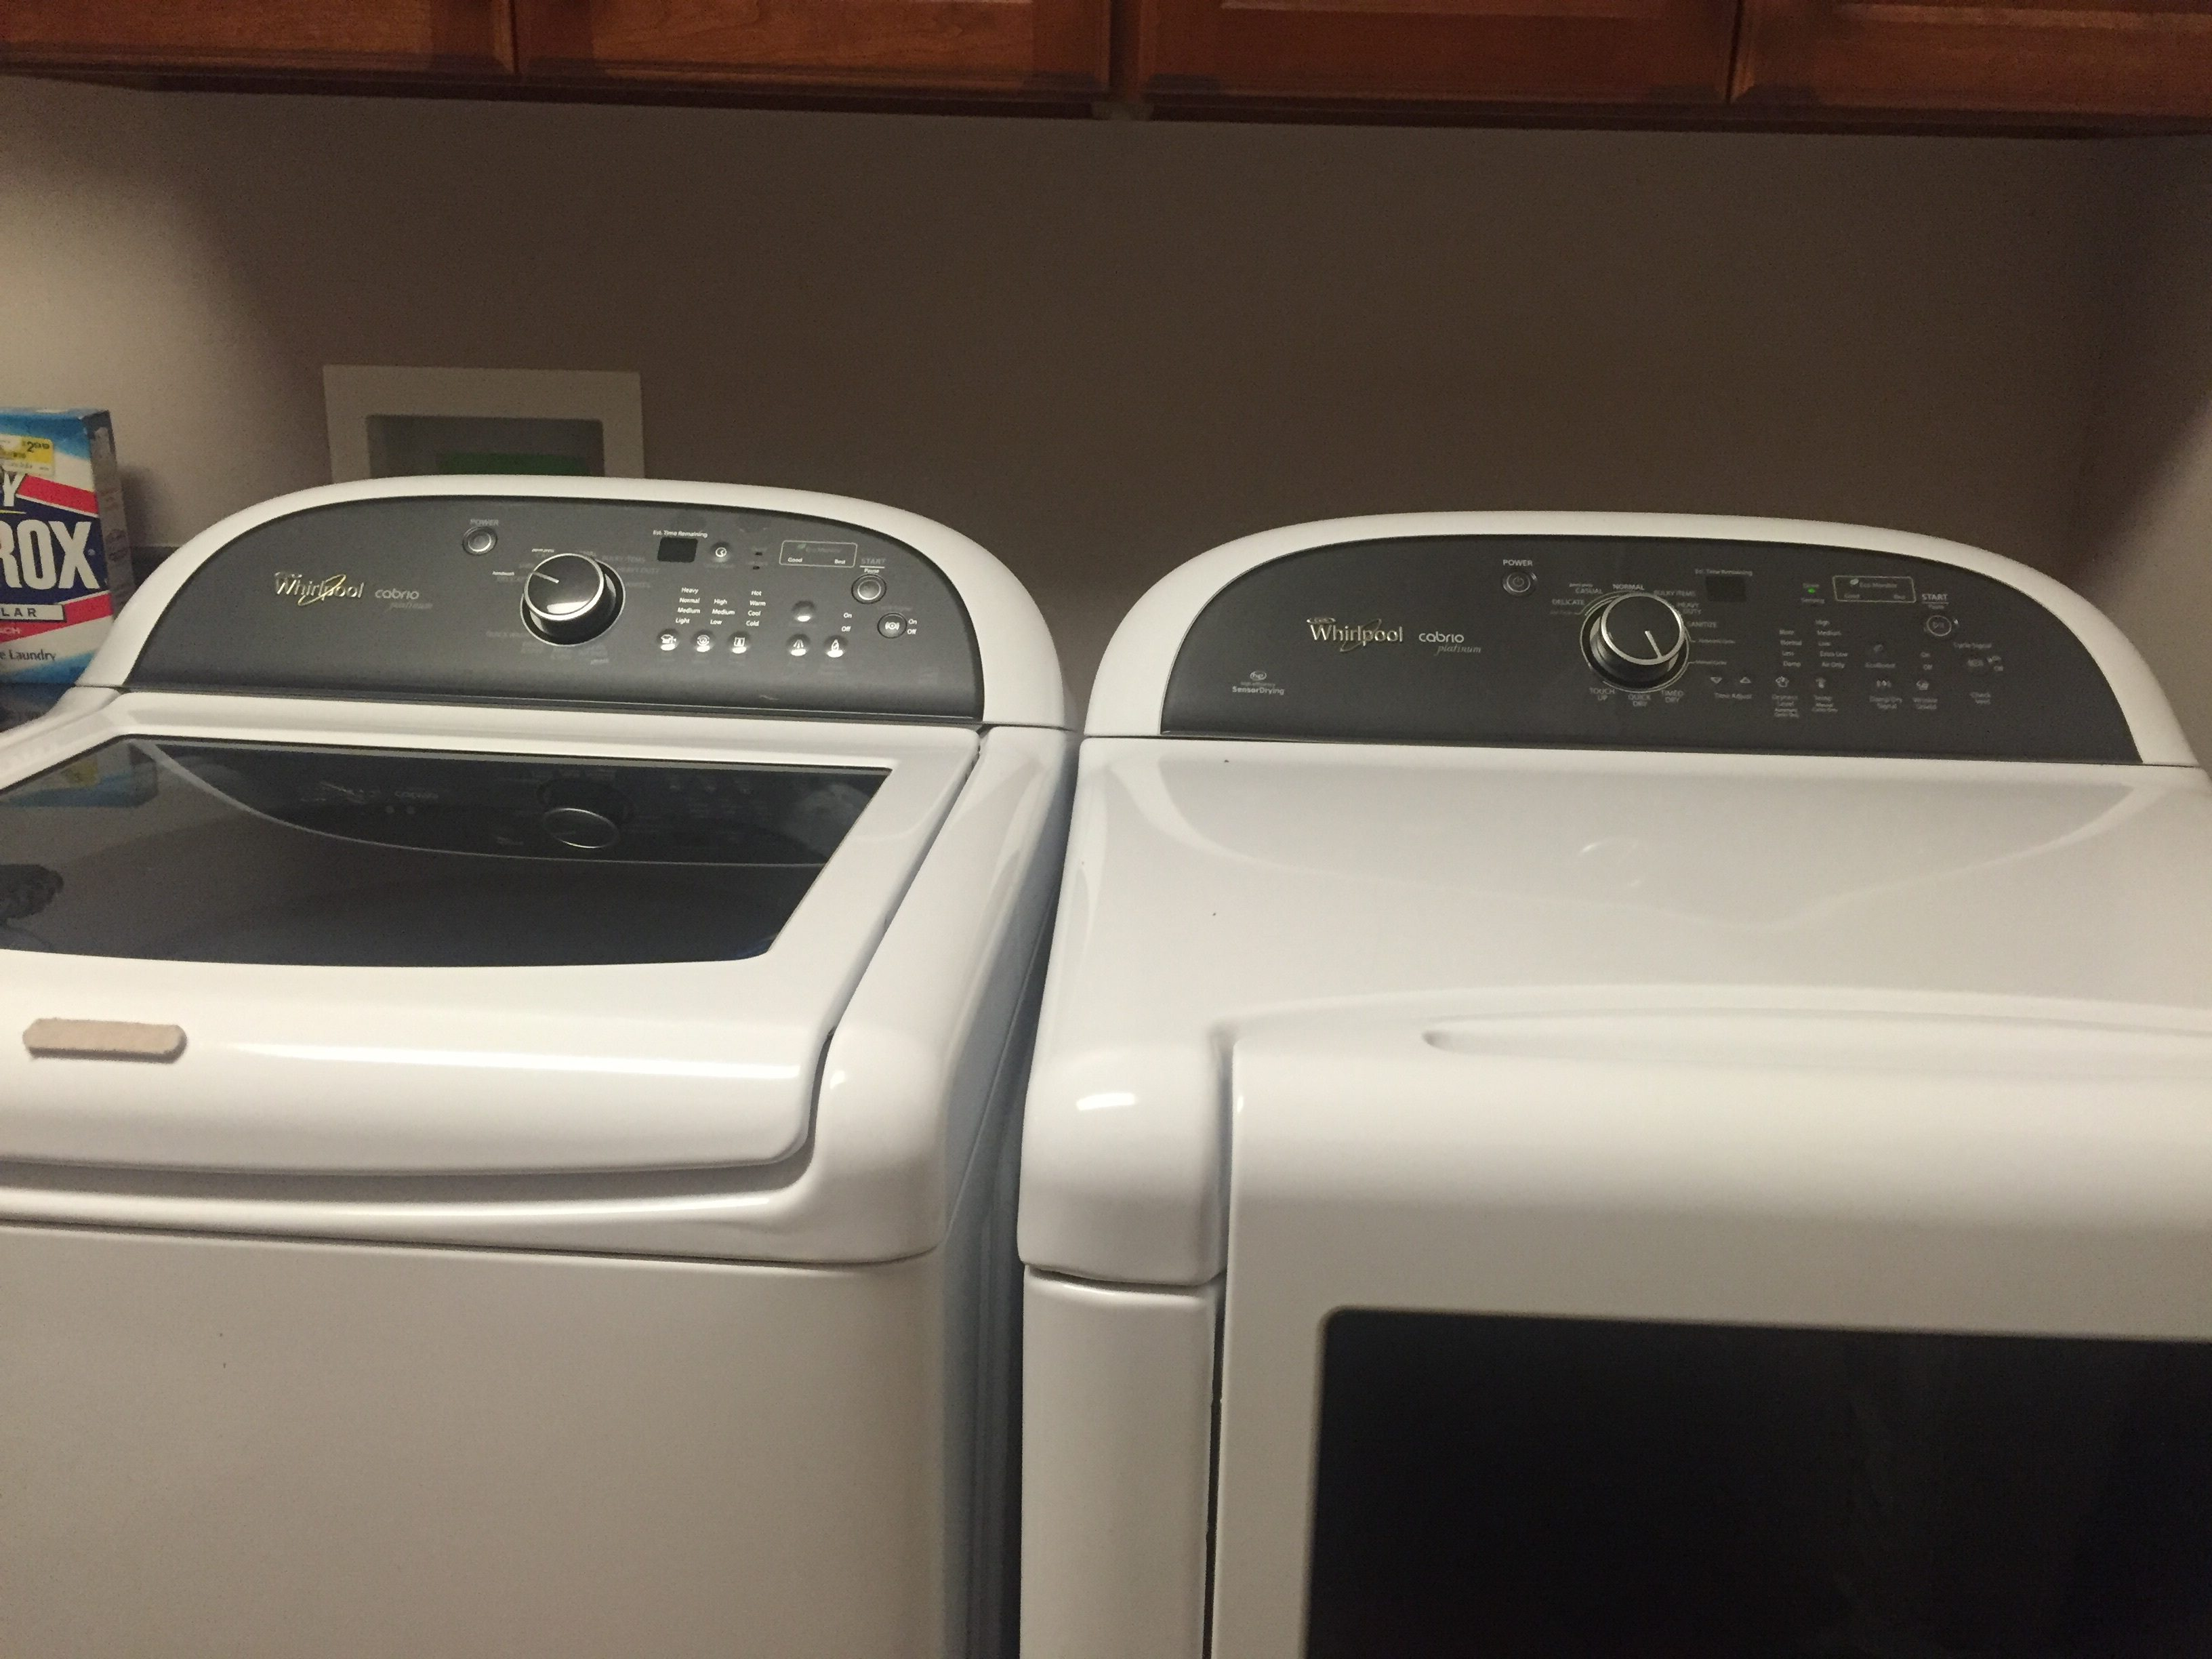 Top 2 198 complaints and reviews about whirlpool washing - Whirlpool problems ...